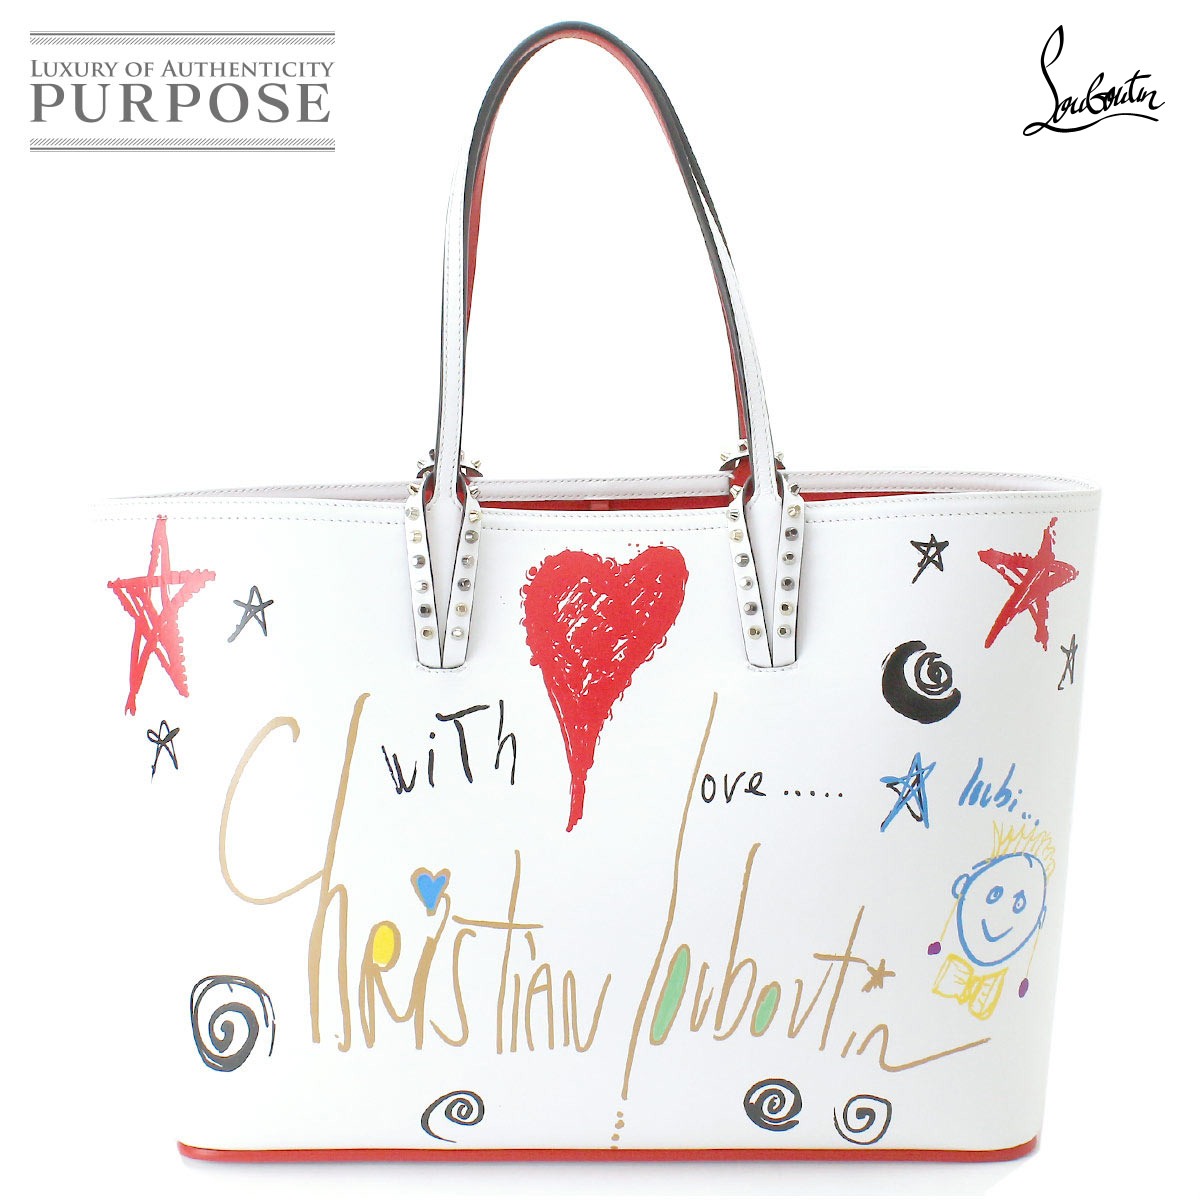 42107dc0c07 クリスチャンルブタン Christian Louboutin hippopotamus Tal bitag tote bag leather  white multicolored